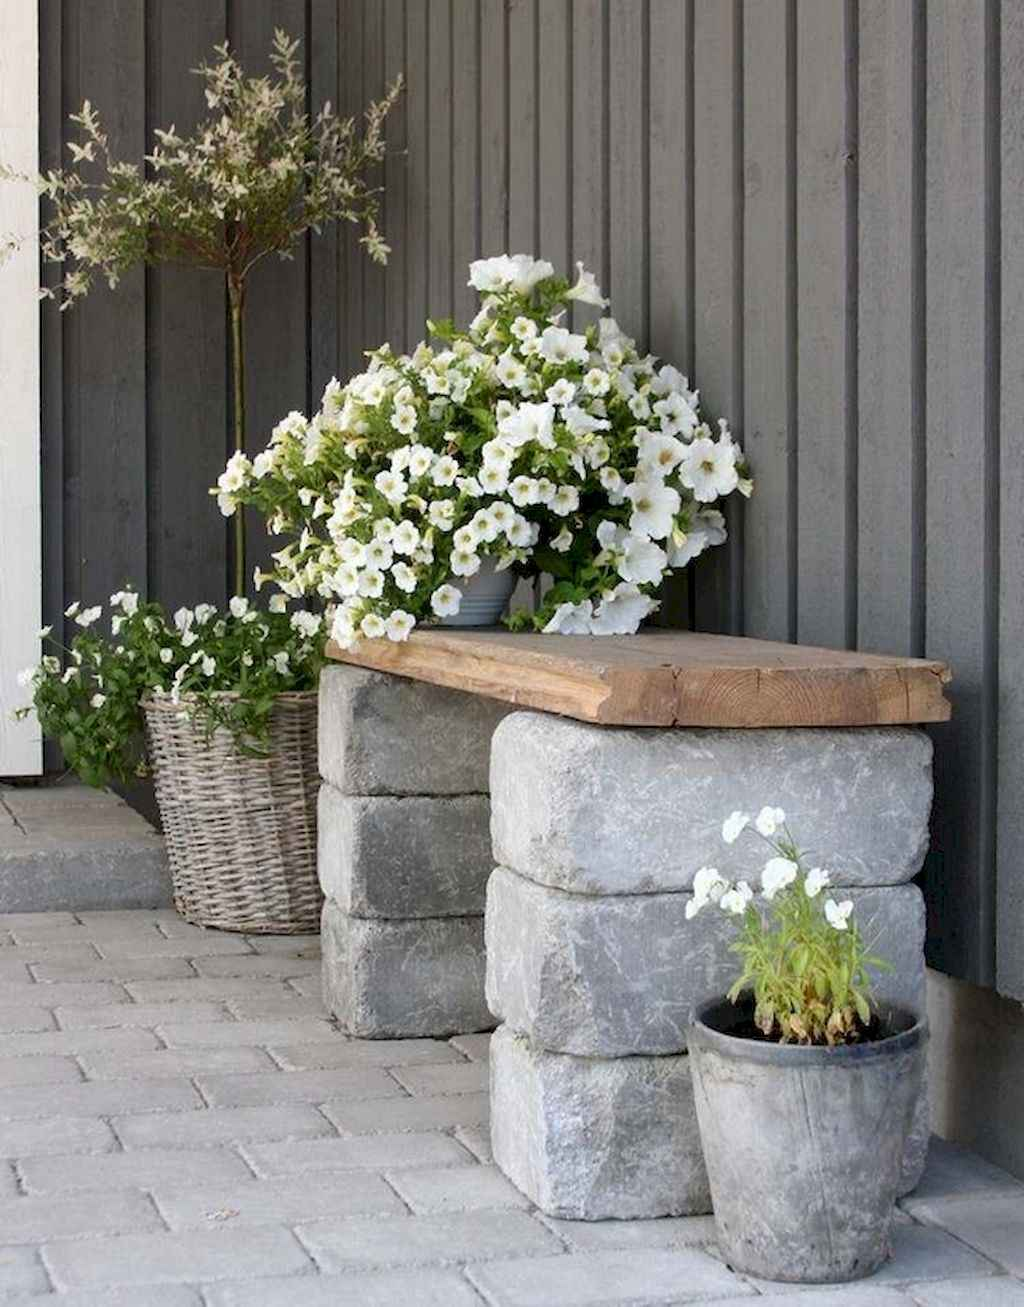 Cleverly diy porch patio decorating ideas (18)